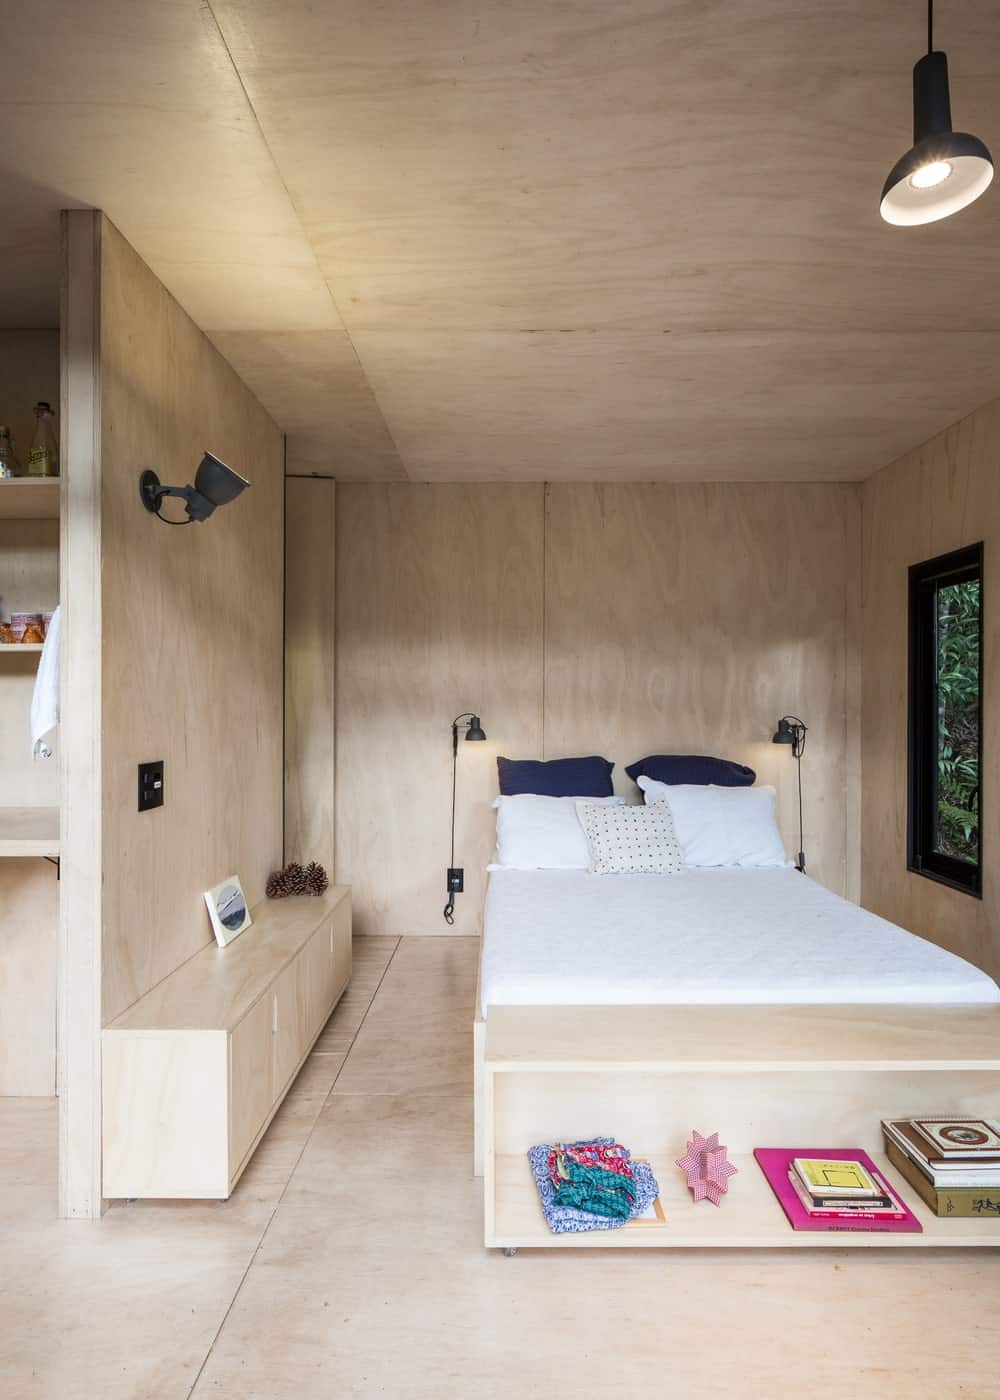 The bedroom has consistent light hardwood flooring, light woodne walls and ceiling as well as the built-in wooden frame of the platform bed as well as the cabinets on the side.